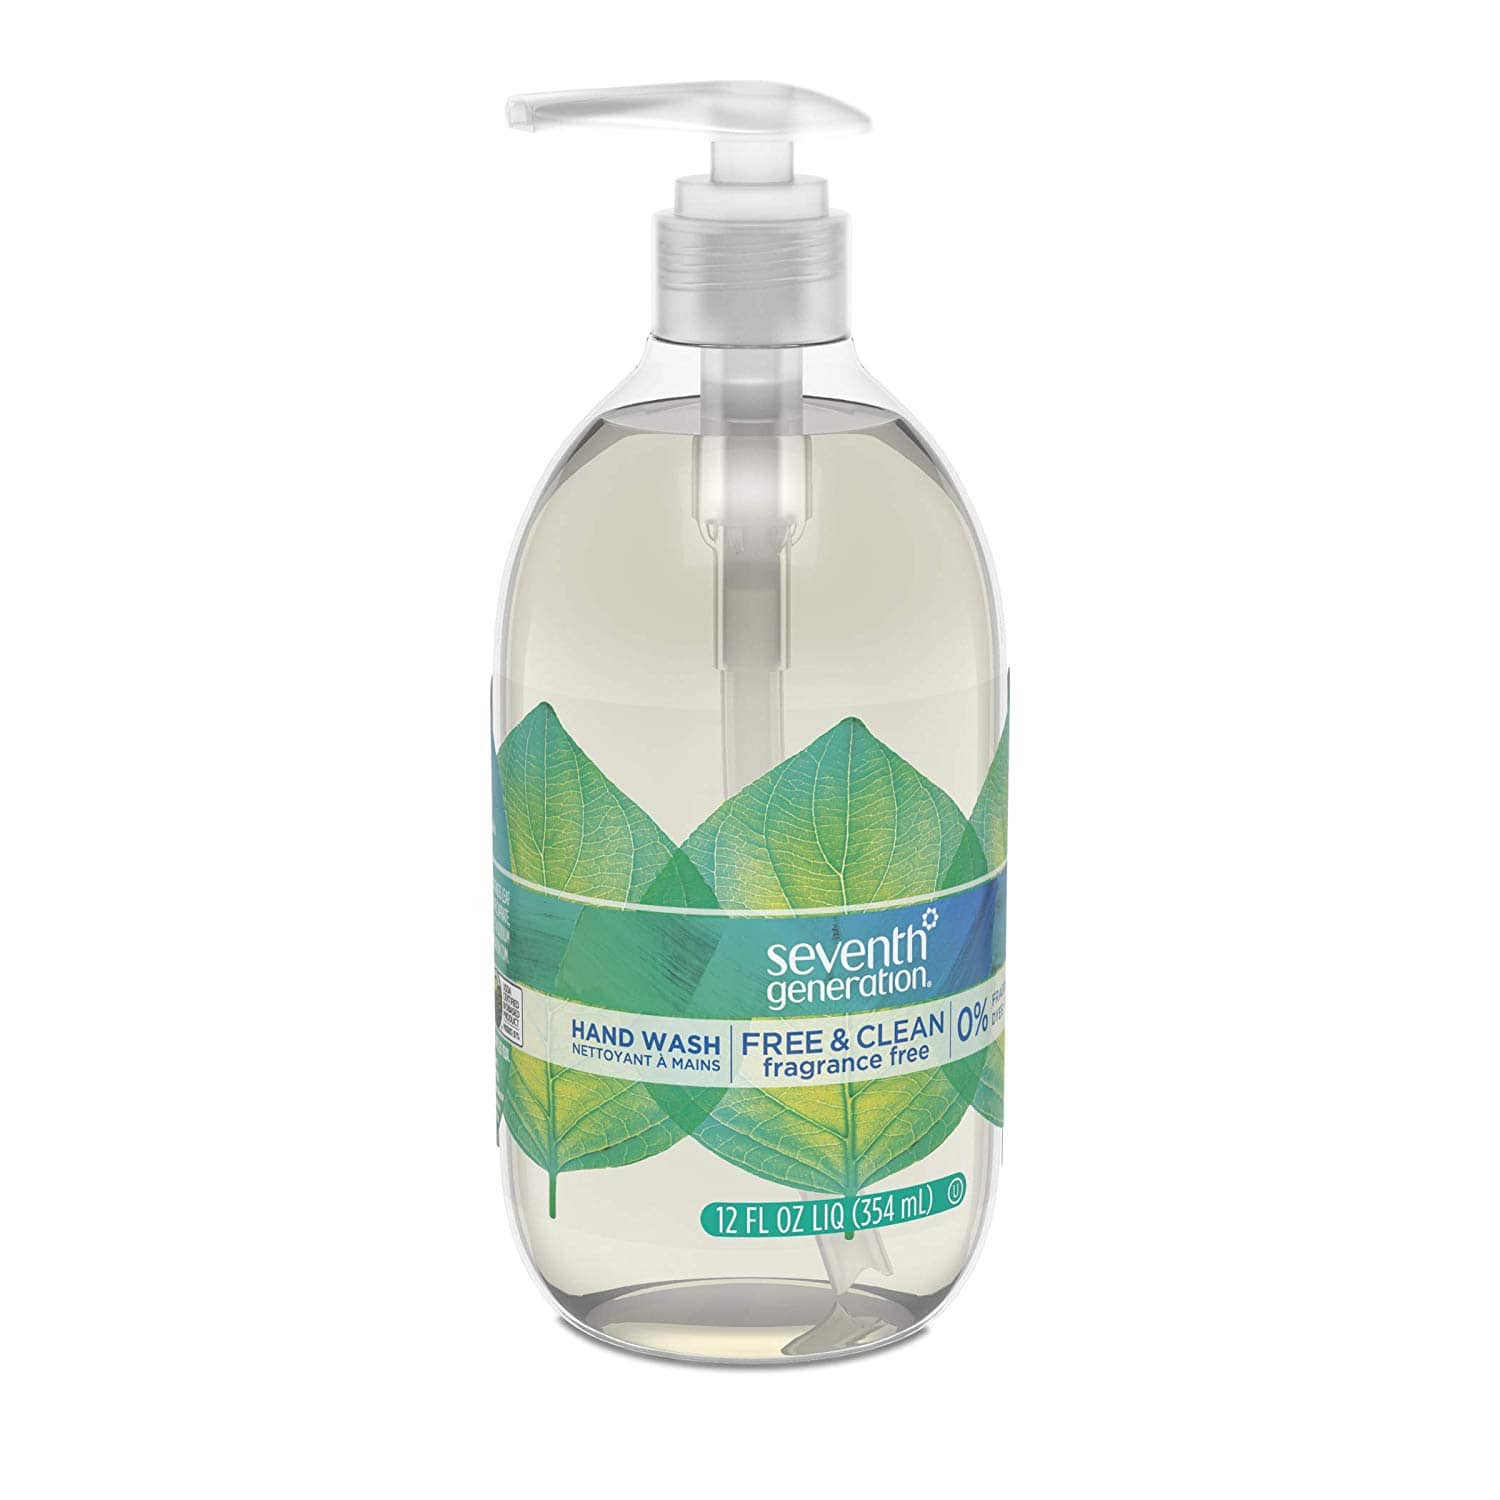 8-Pack 12-Oz Seventh Generation Hand Wash Soap (Free & Clean Unscented) $11 ($1.37 each) w/ S&S + Free S/H